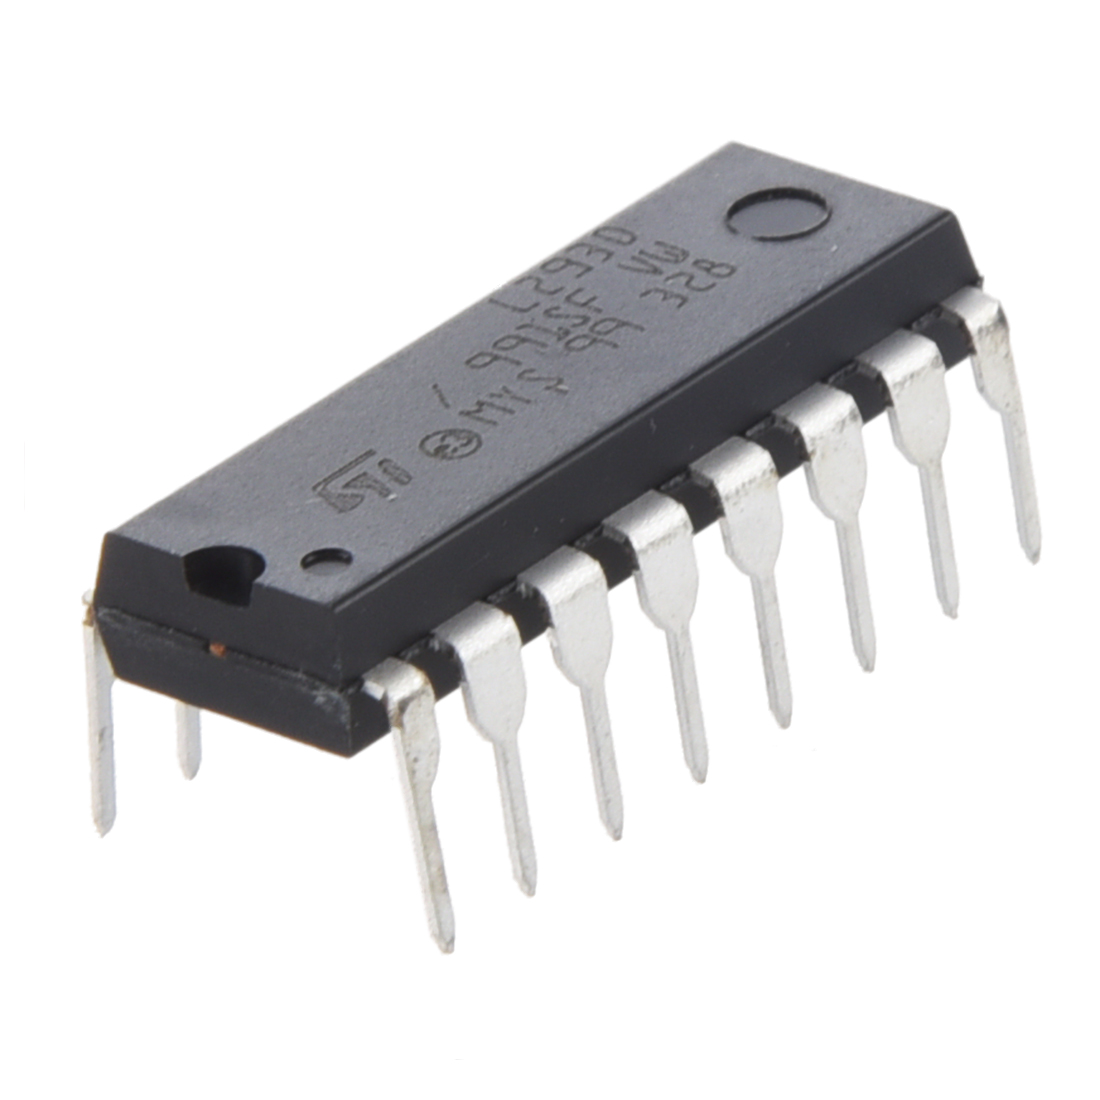 5 x controlador de motor paso a paso l293d chip diodo g4h1 ebay delivery 5 x l293d driver chip diode notelight shooting and different displays may cause the color of the item in the picture a little different from the sciox Gallery